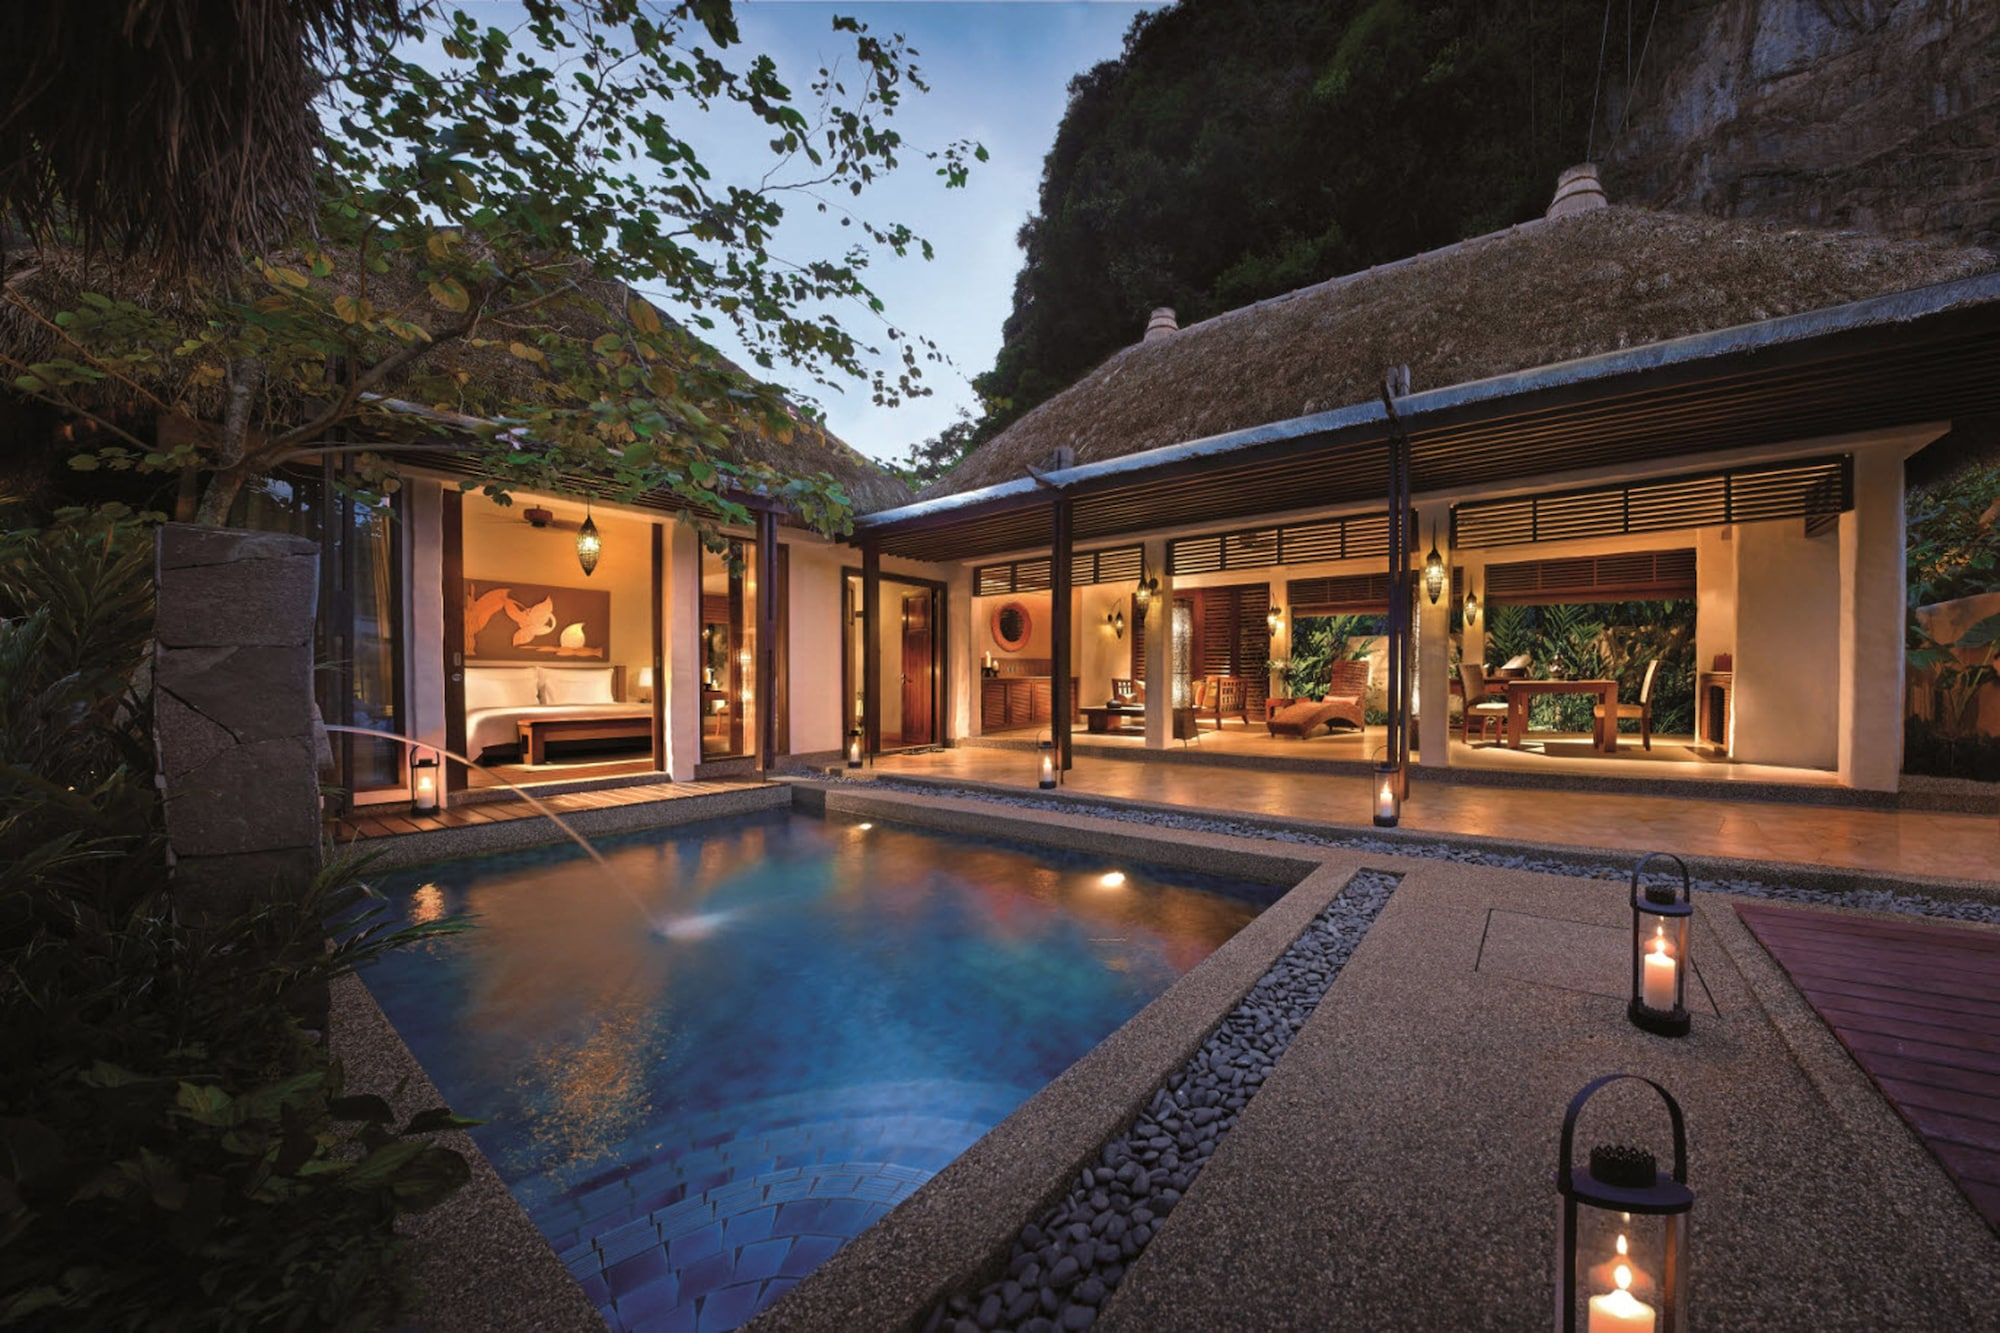 The Banjaran Hotsprings Retreat, Kinta